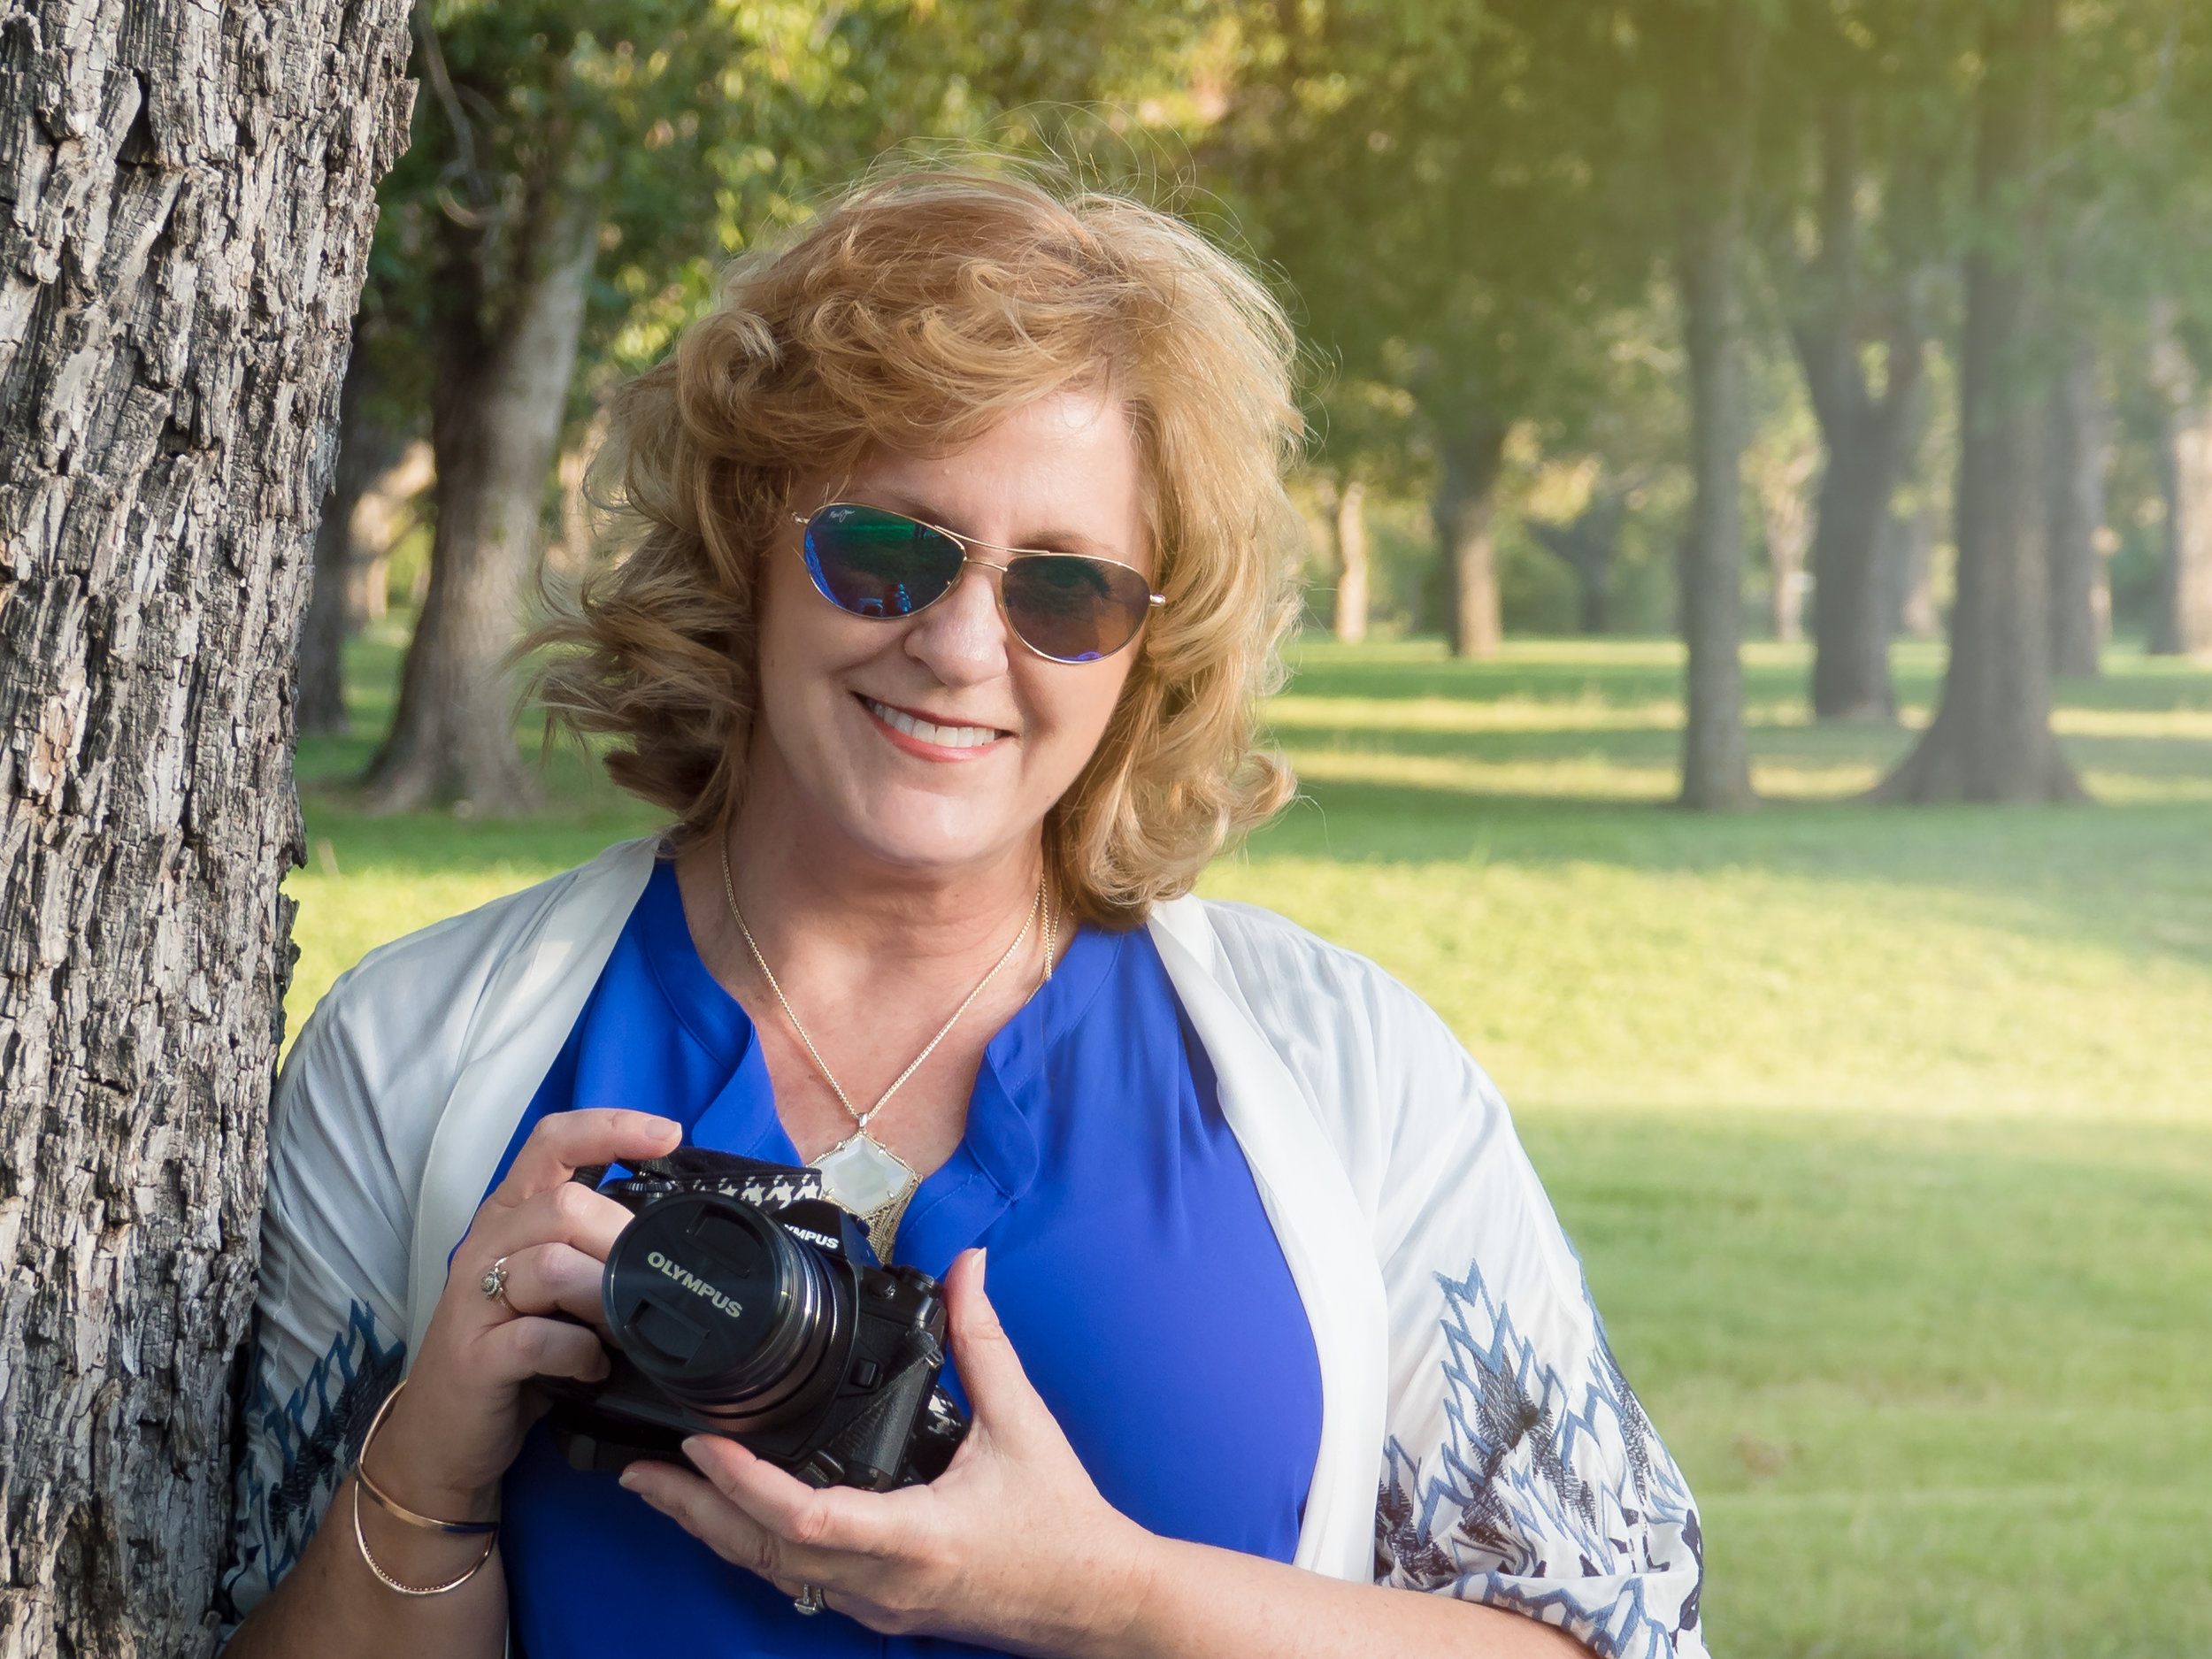 YOUR PORTRAITS CAN BE TAKEN OUTSIDE OR IF WEATHER IS NOT PERMITTING-INSIDE THE STUDIO